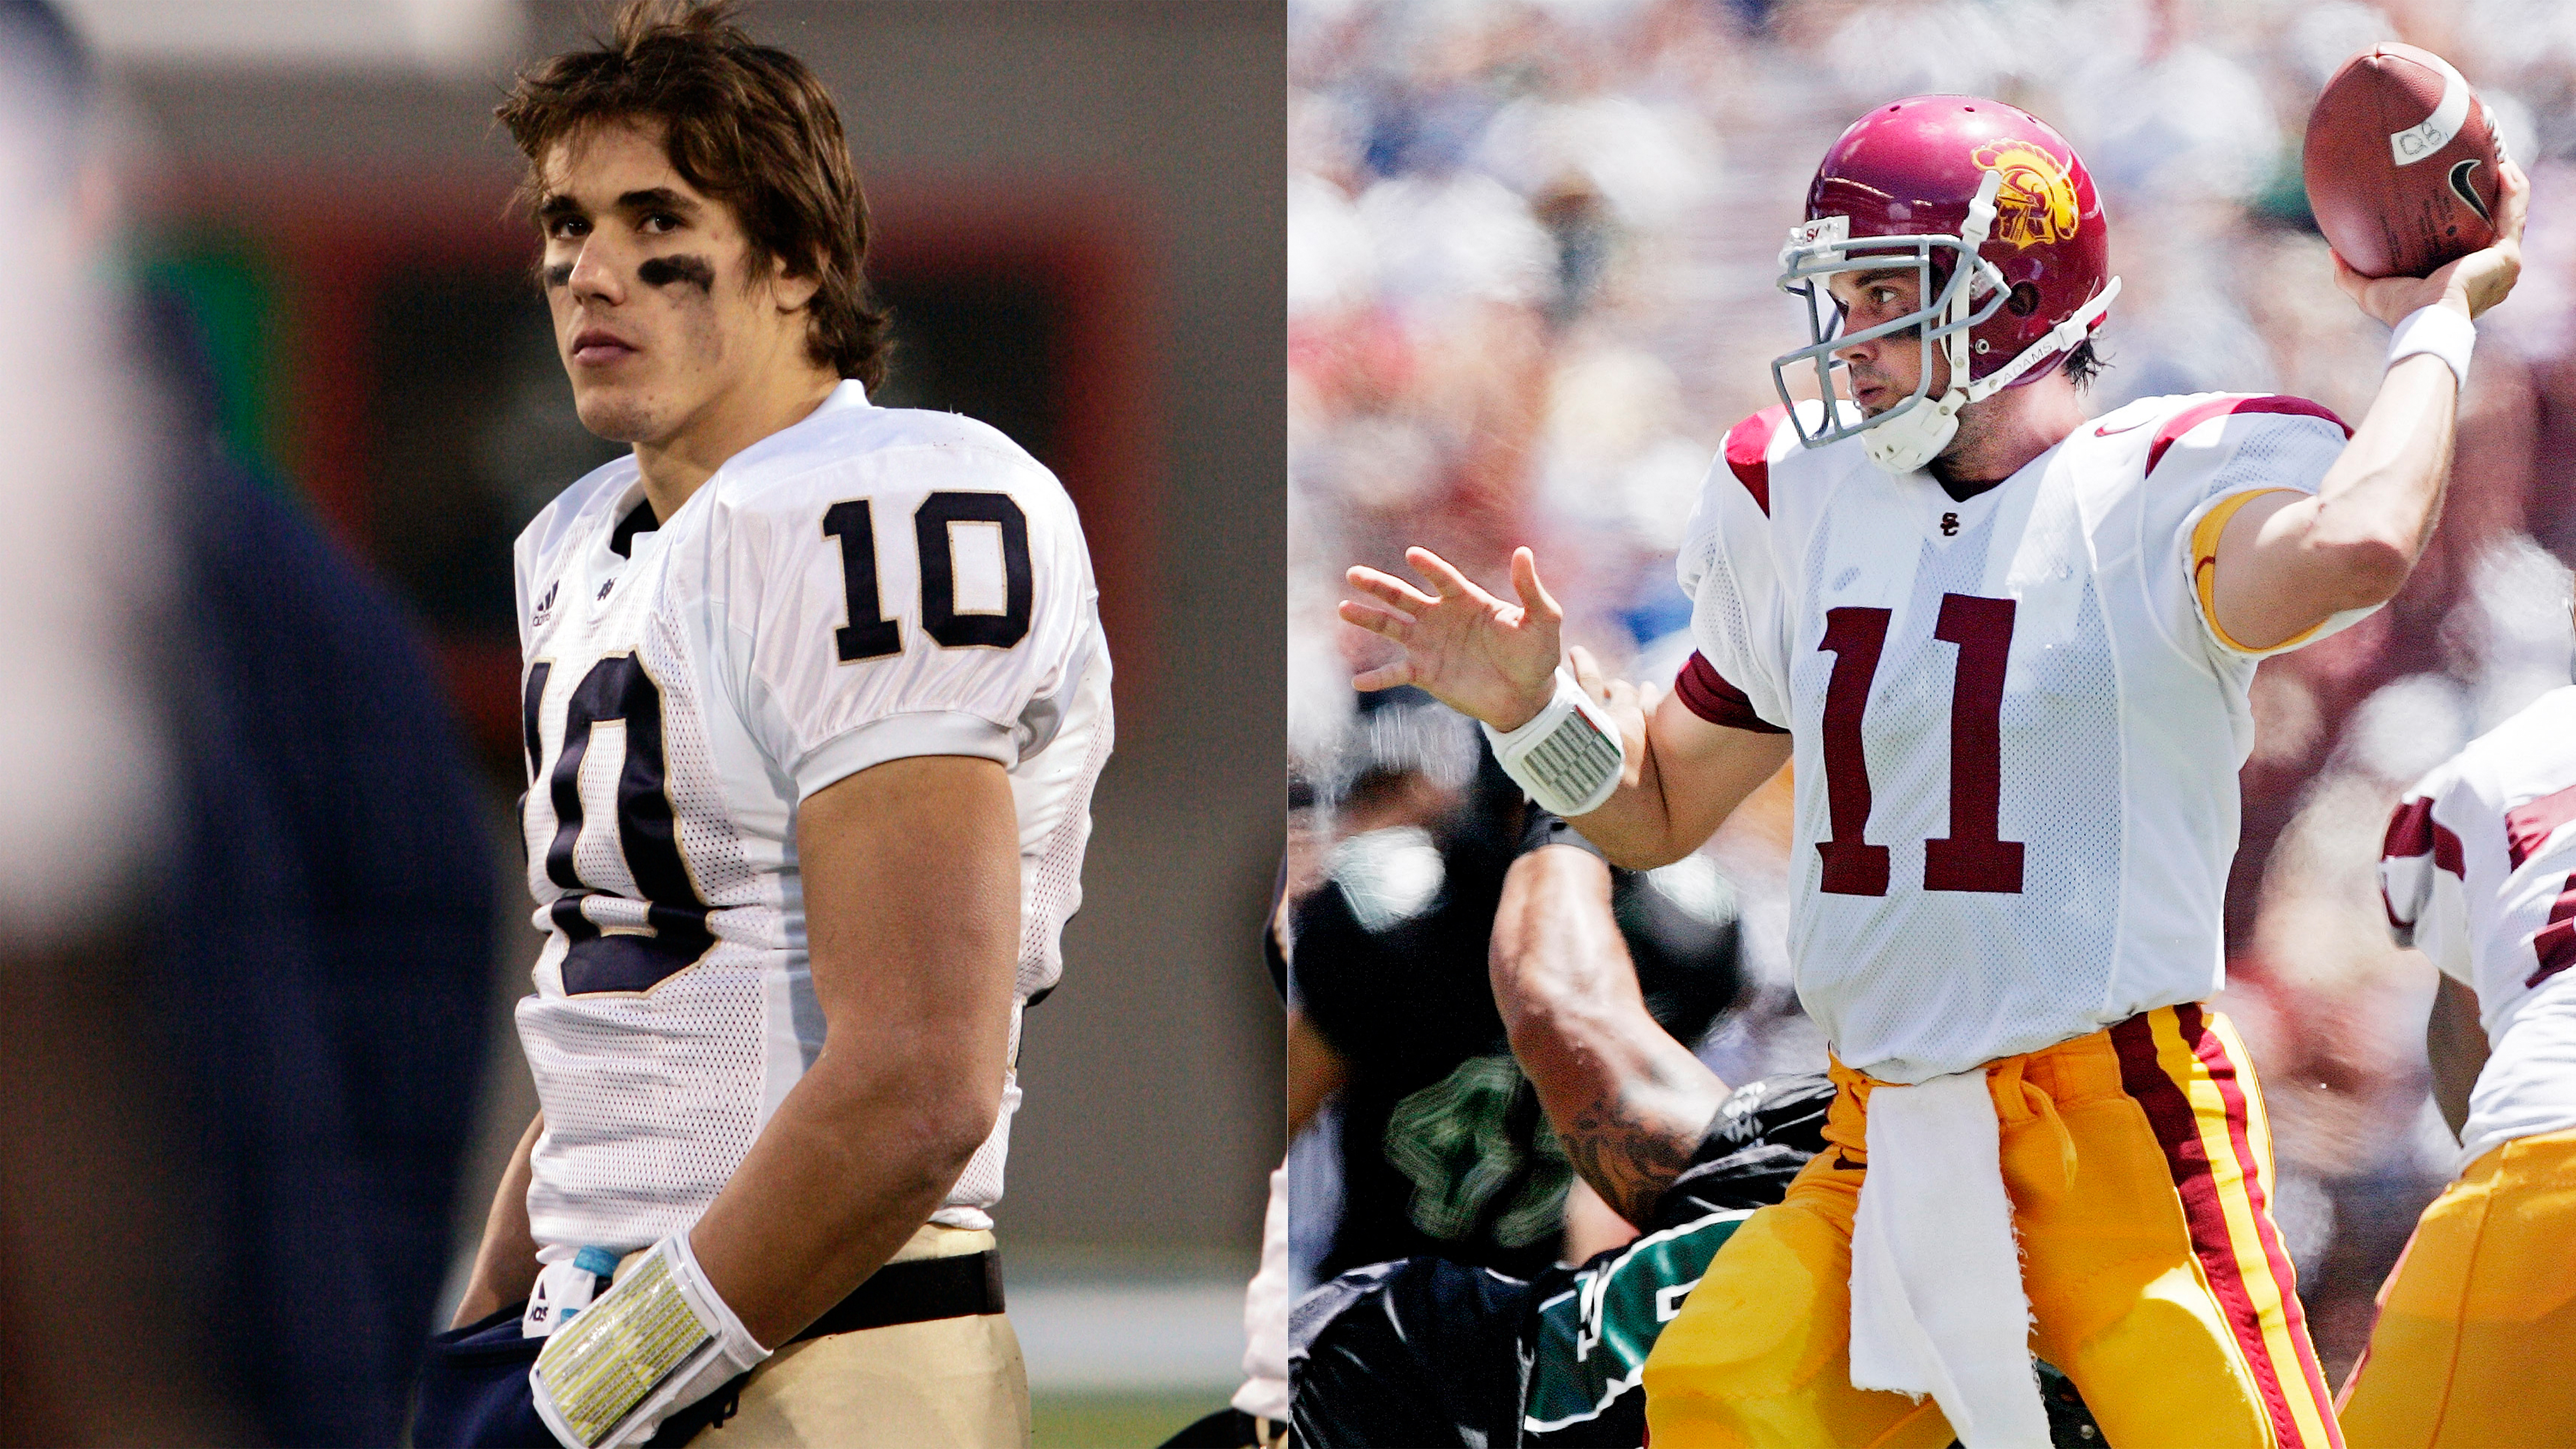 Matt Leinart and Brady Quinn got into it over Twitter and Quinn said Leinart cheated in USC's win over Notre Dame